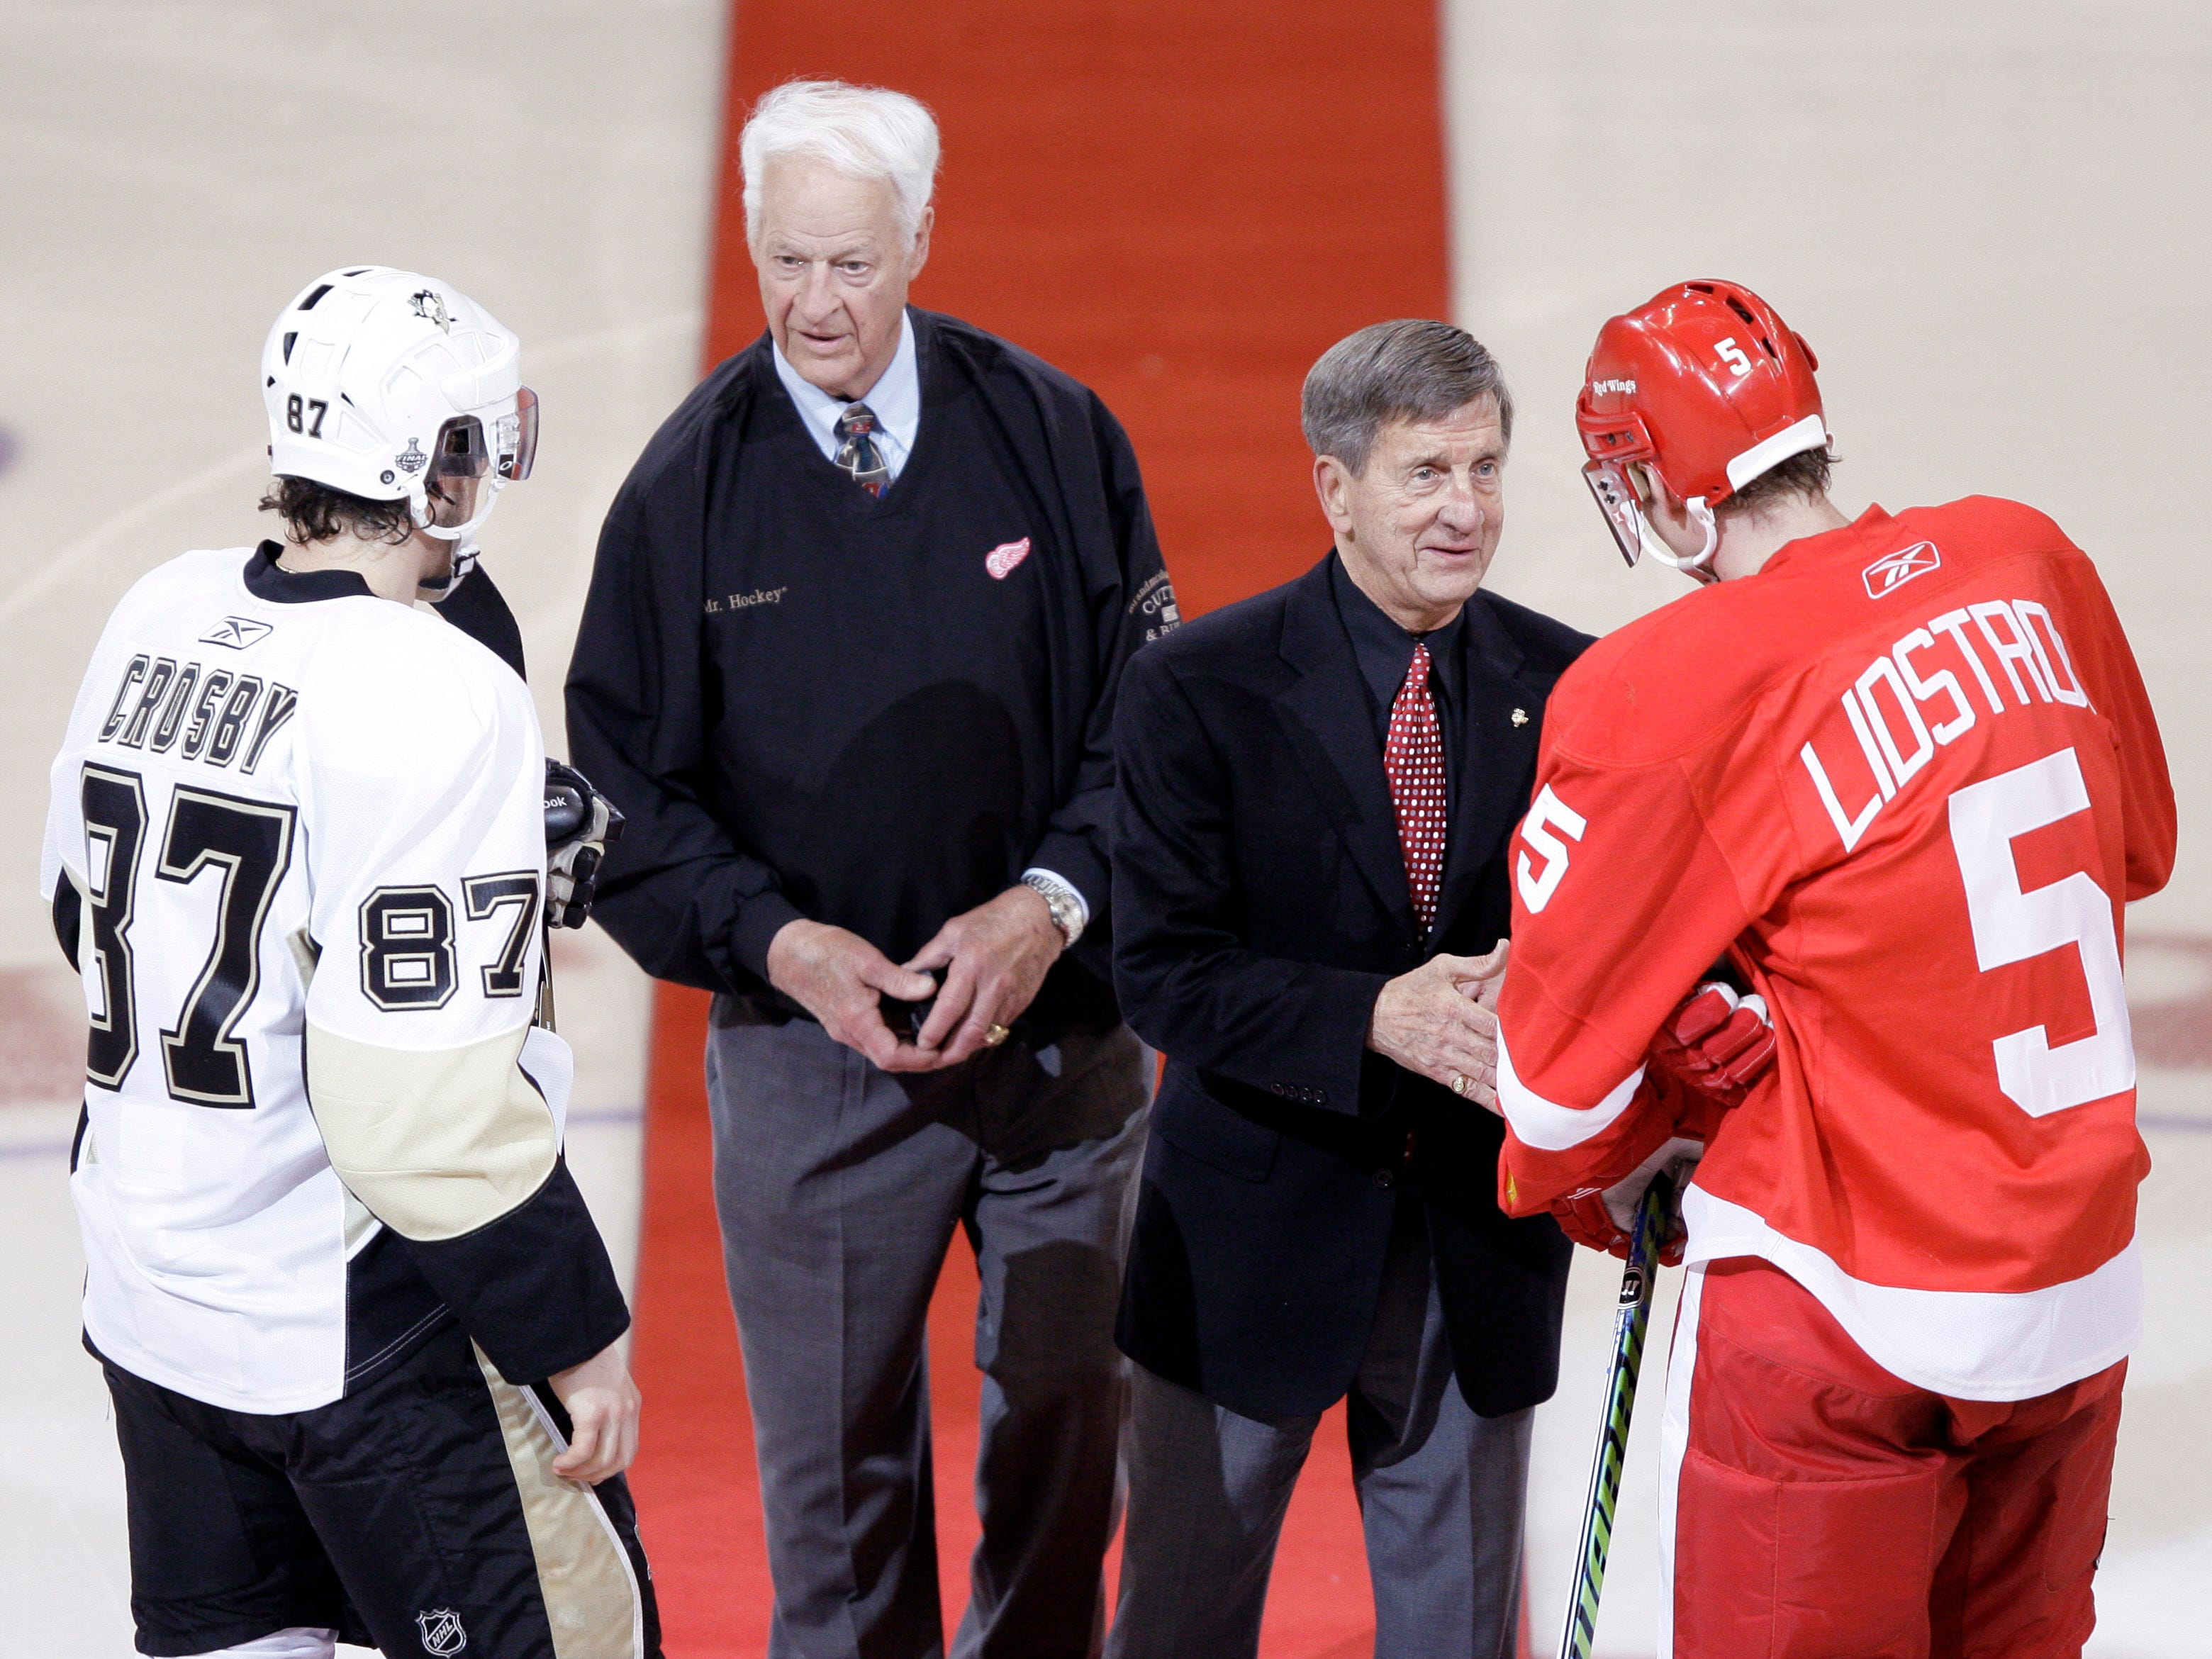 Red Wings hockey legends Gordie Howe and Ted Lindsay meet with Pittsburgh Penguins' Sidney Crosby  and Red Wings' Nicklas Lidstrom to drop the ceremonial first pucks before the start of Game 1 of the NHL hockey Stanley Cup finals in Detroit, May 30, 2009.